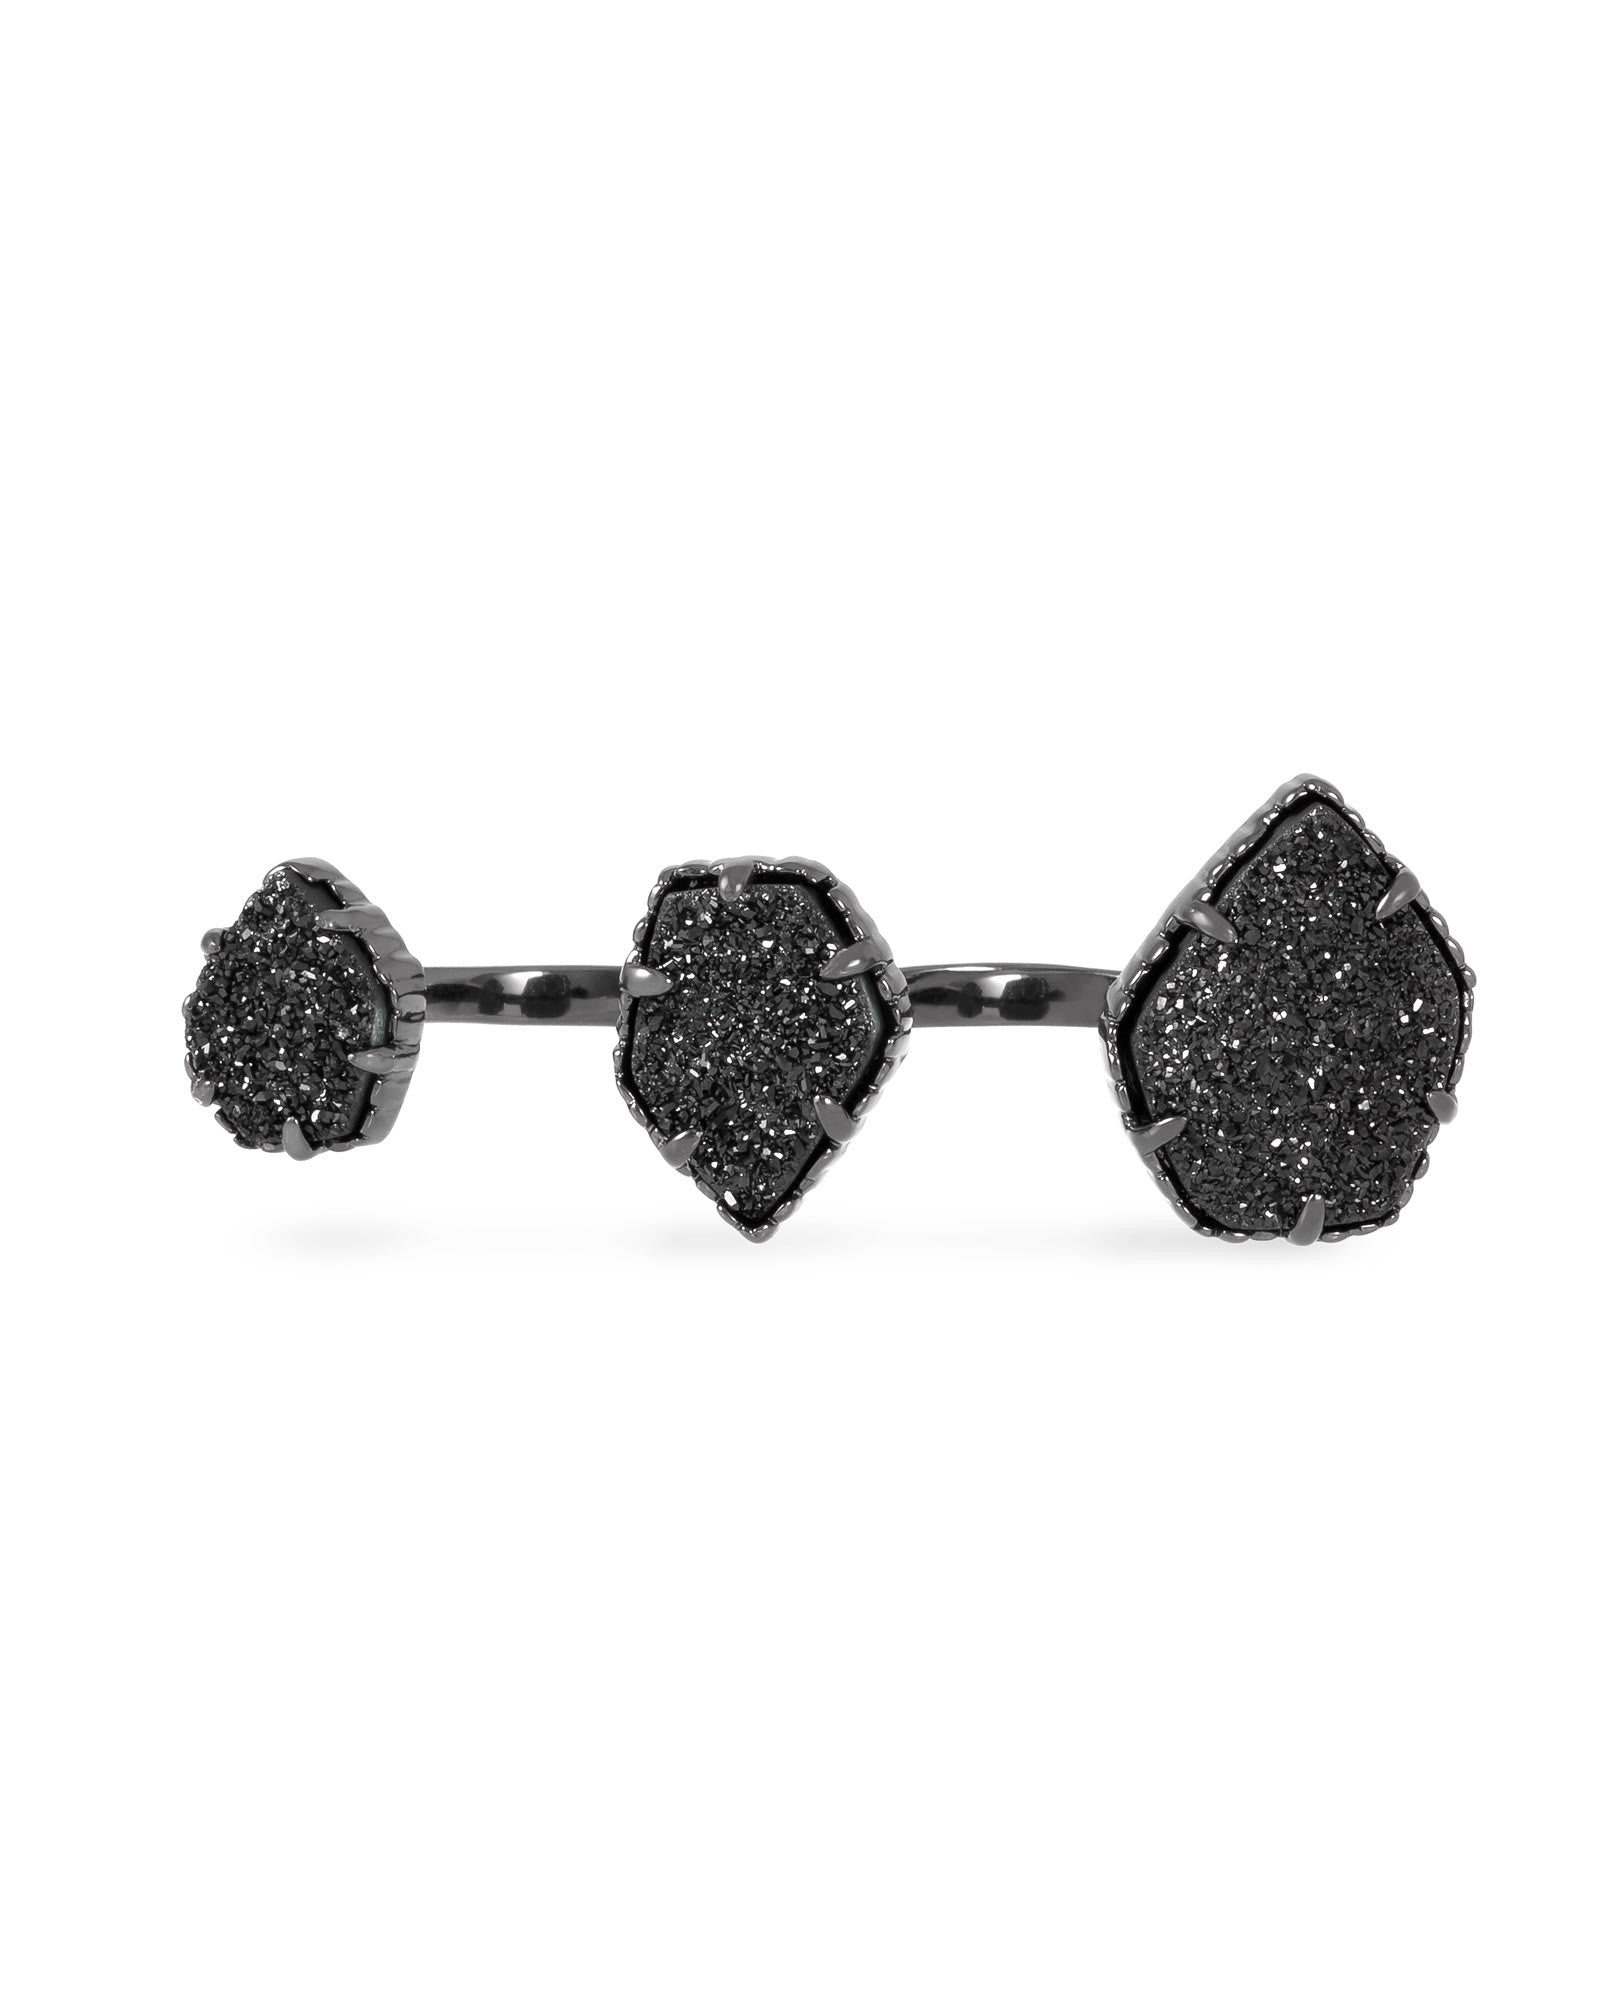 Black Gun Plated with Black Druzy Stone Knuckle Ring